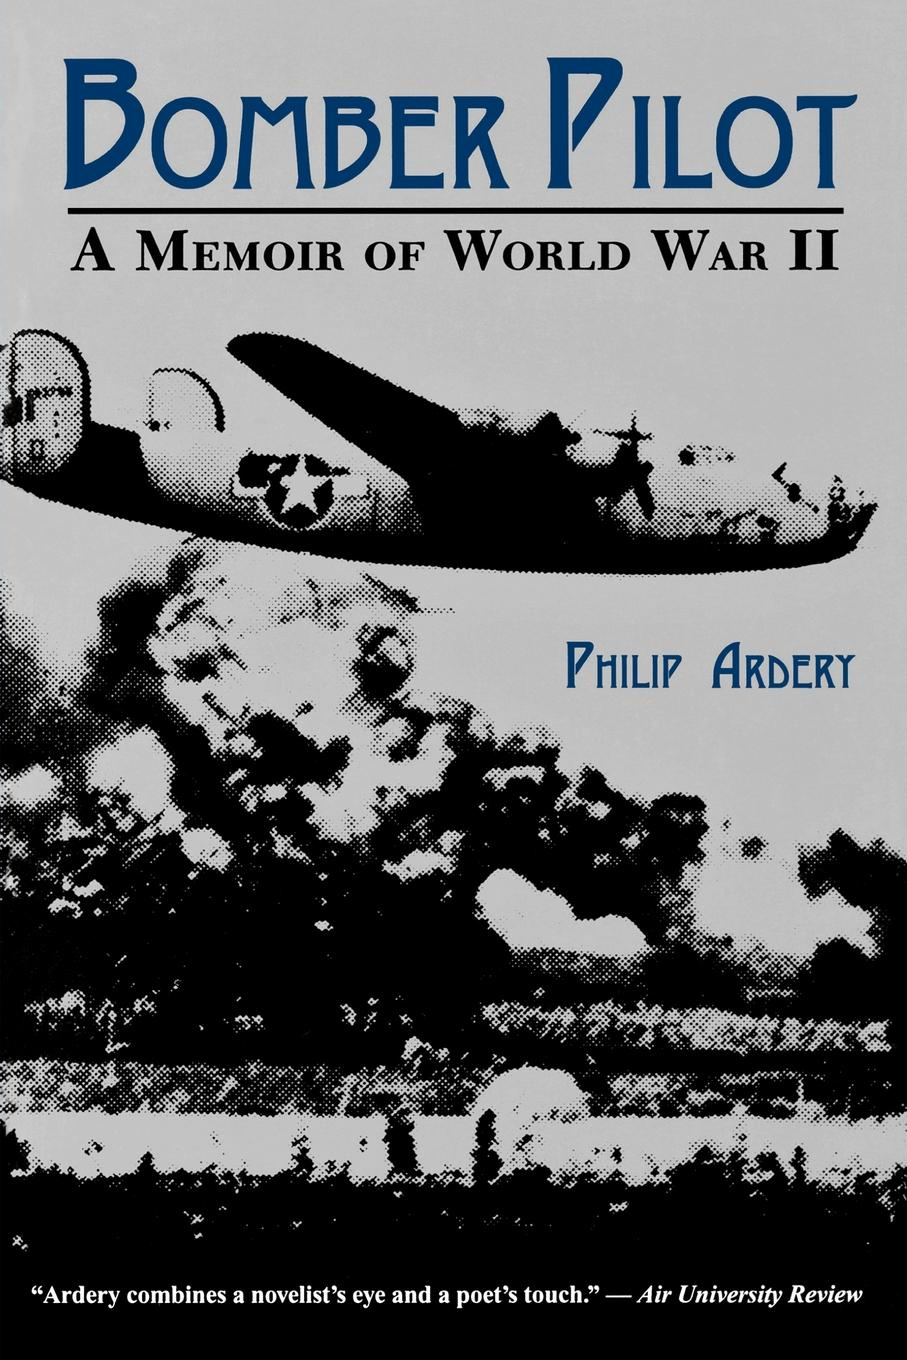 Philip Ardery Bomber Pilot. A Memoir of World War II a Memoir of World War II